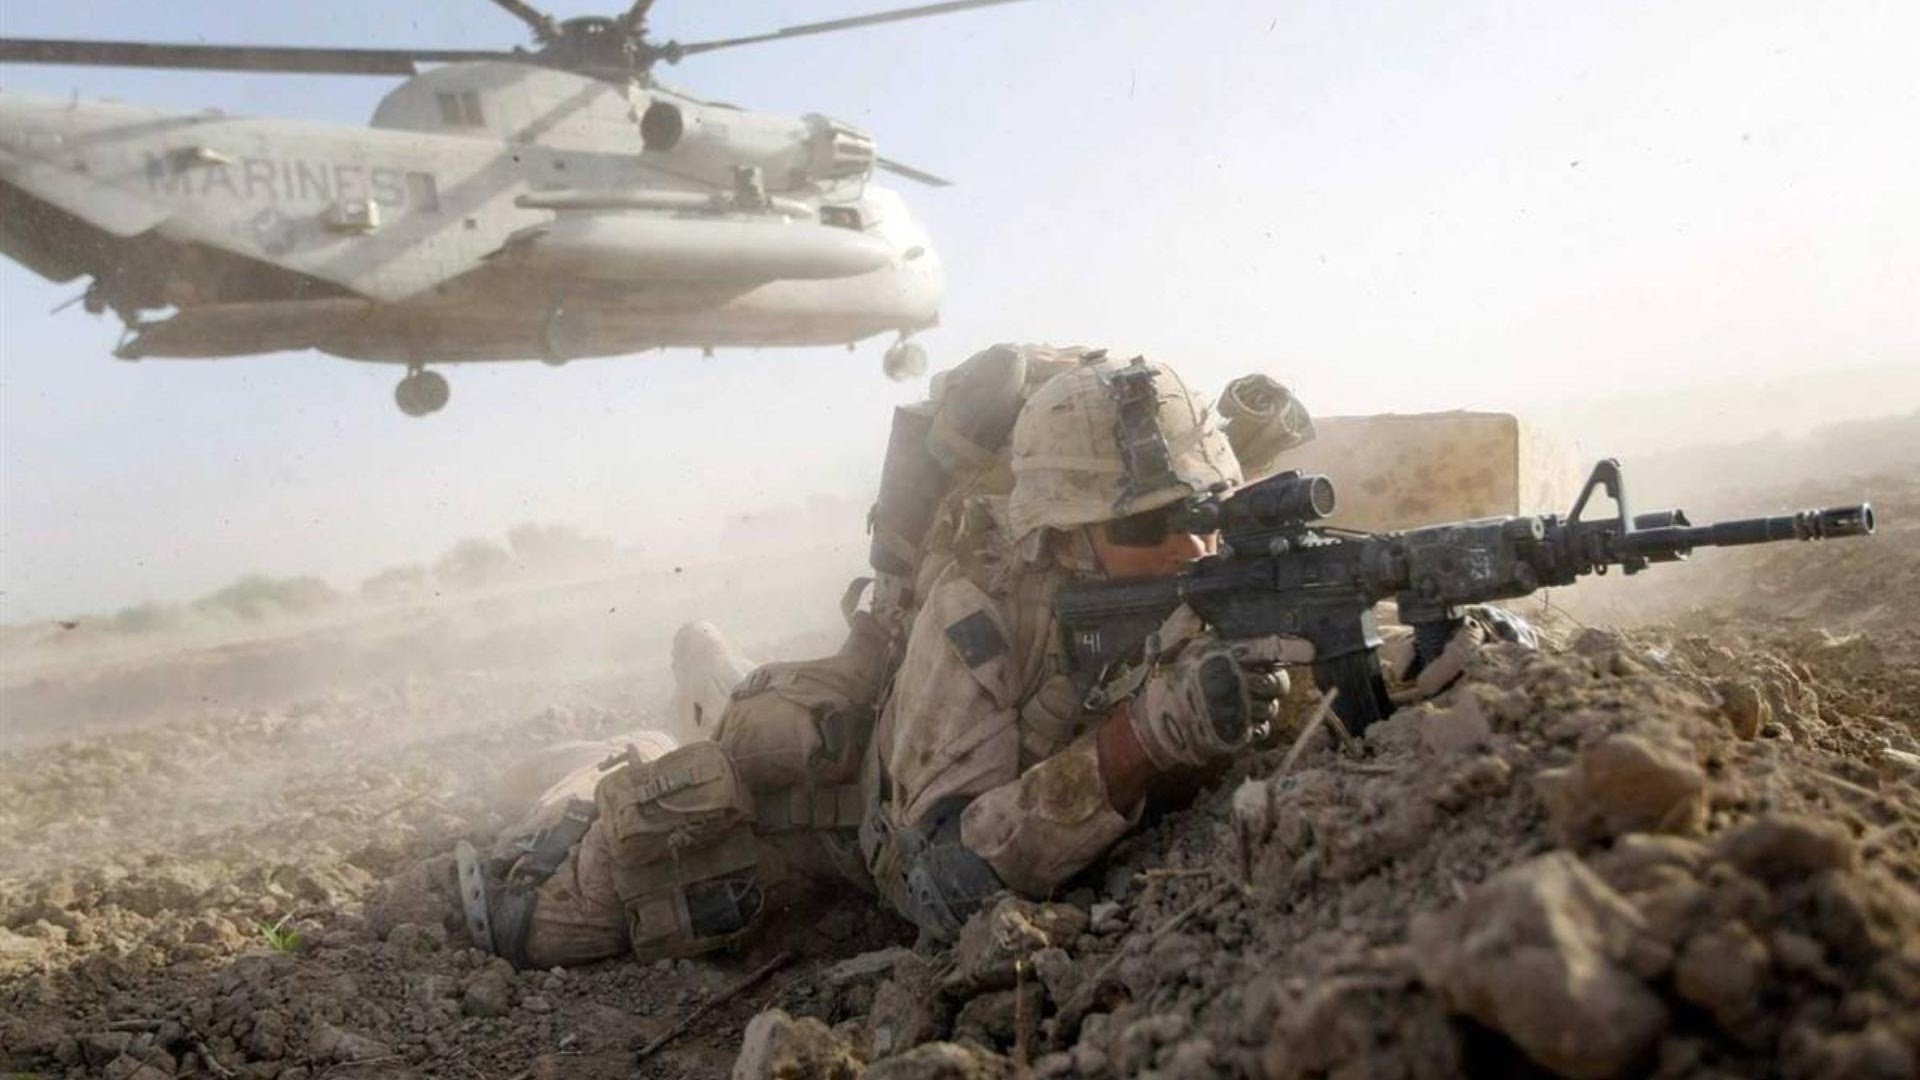 US Marines in Afghanistan. Combat Footage 1080p – Intense Firefights  Against Taliban – YouTube